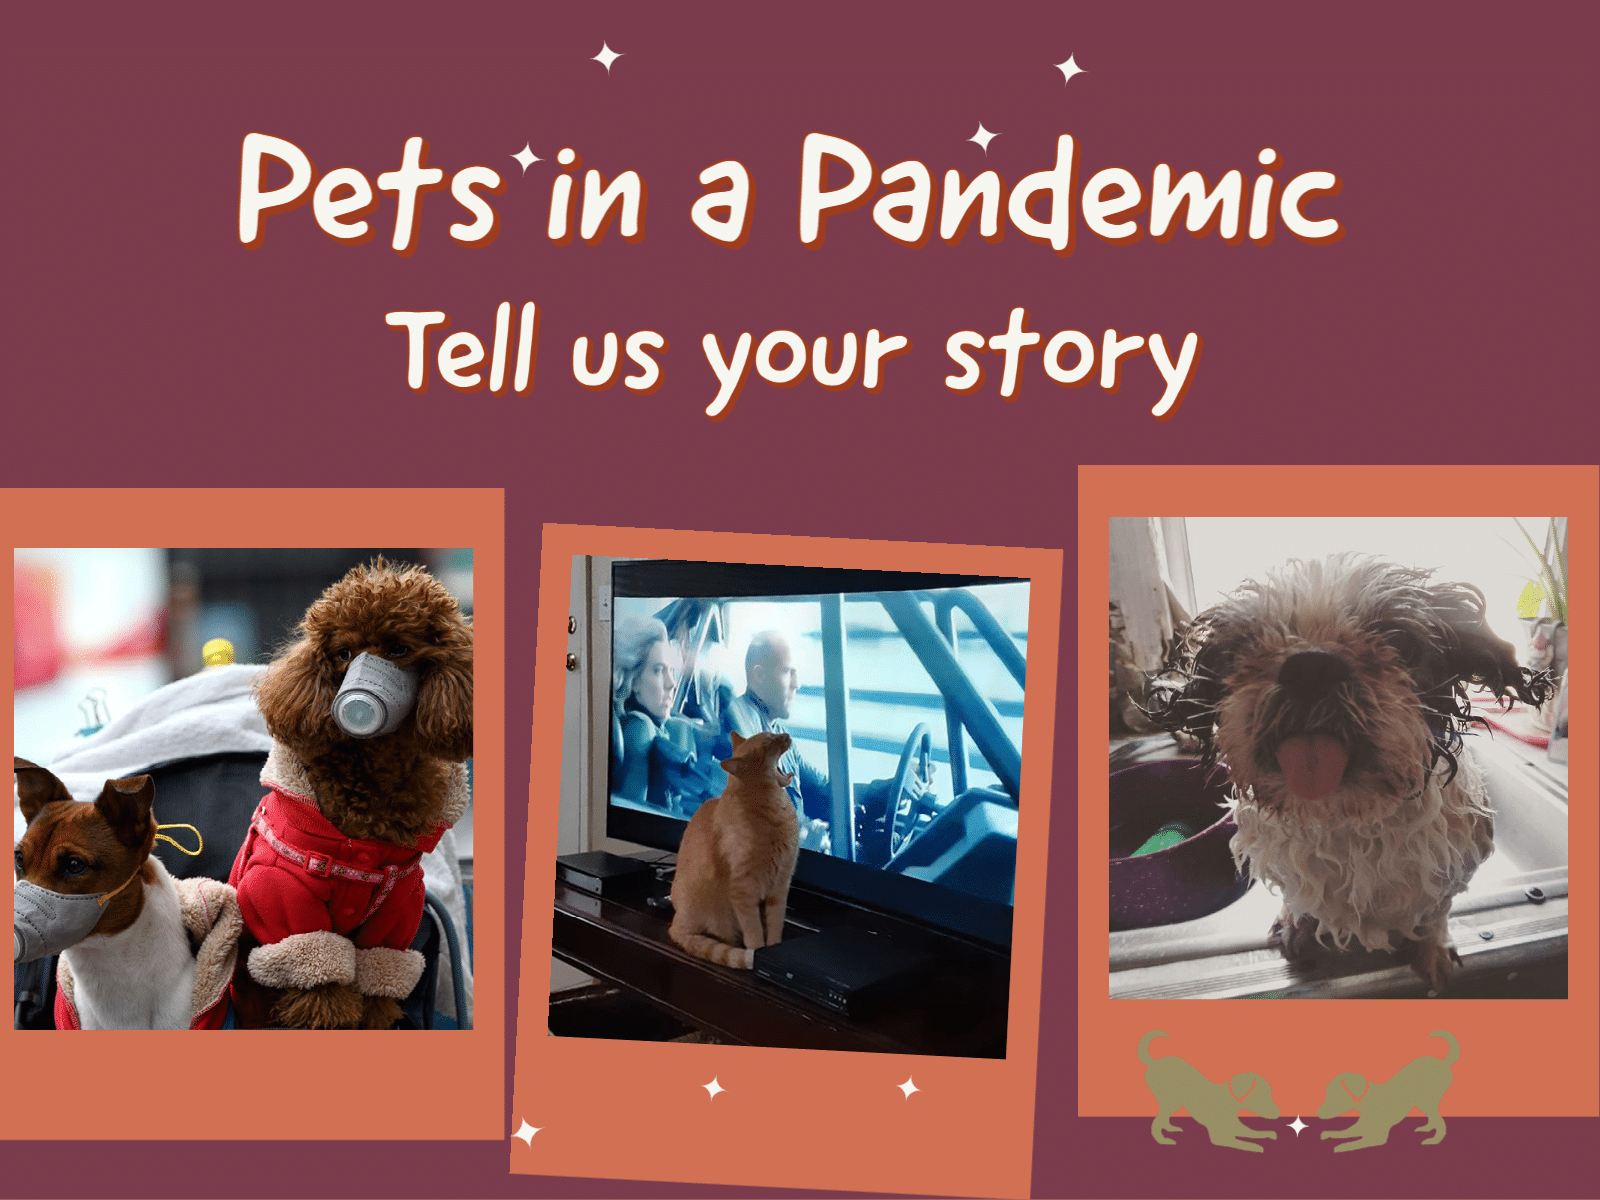 Pets in a Pandemic